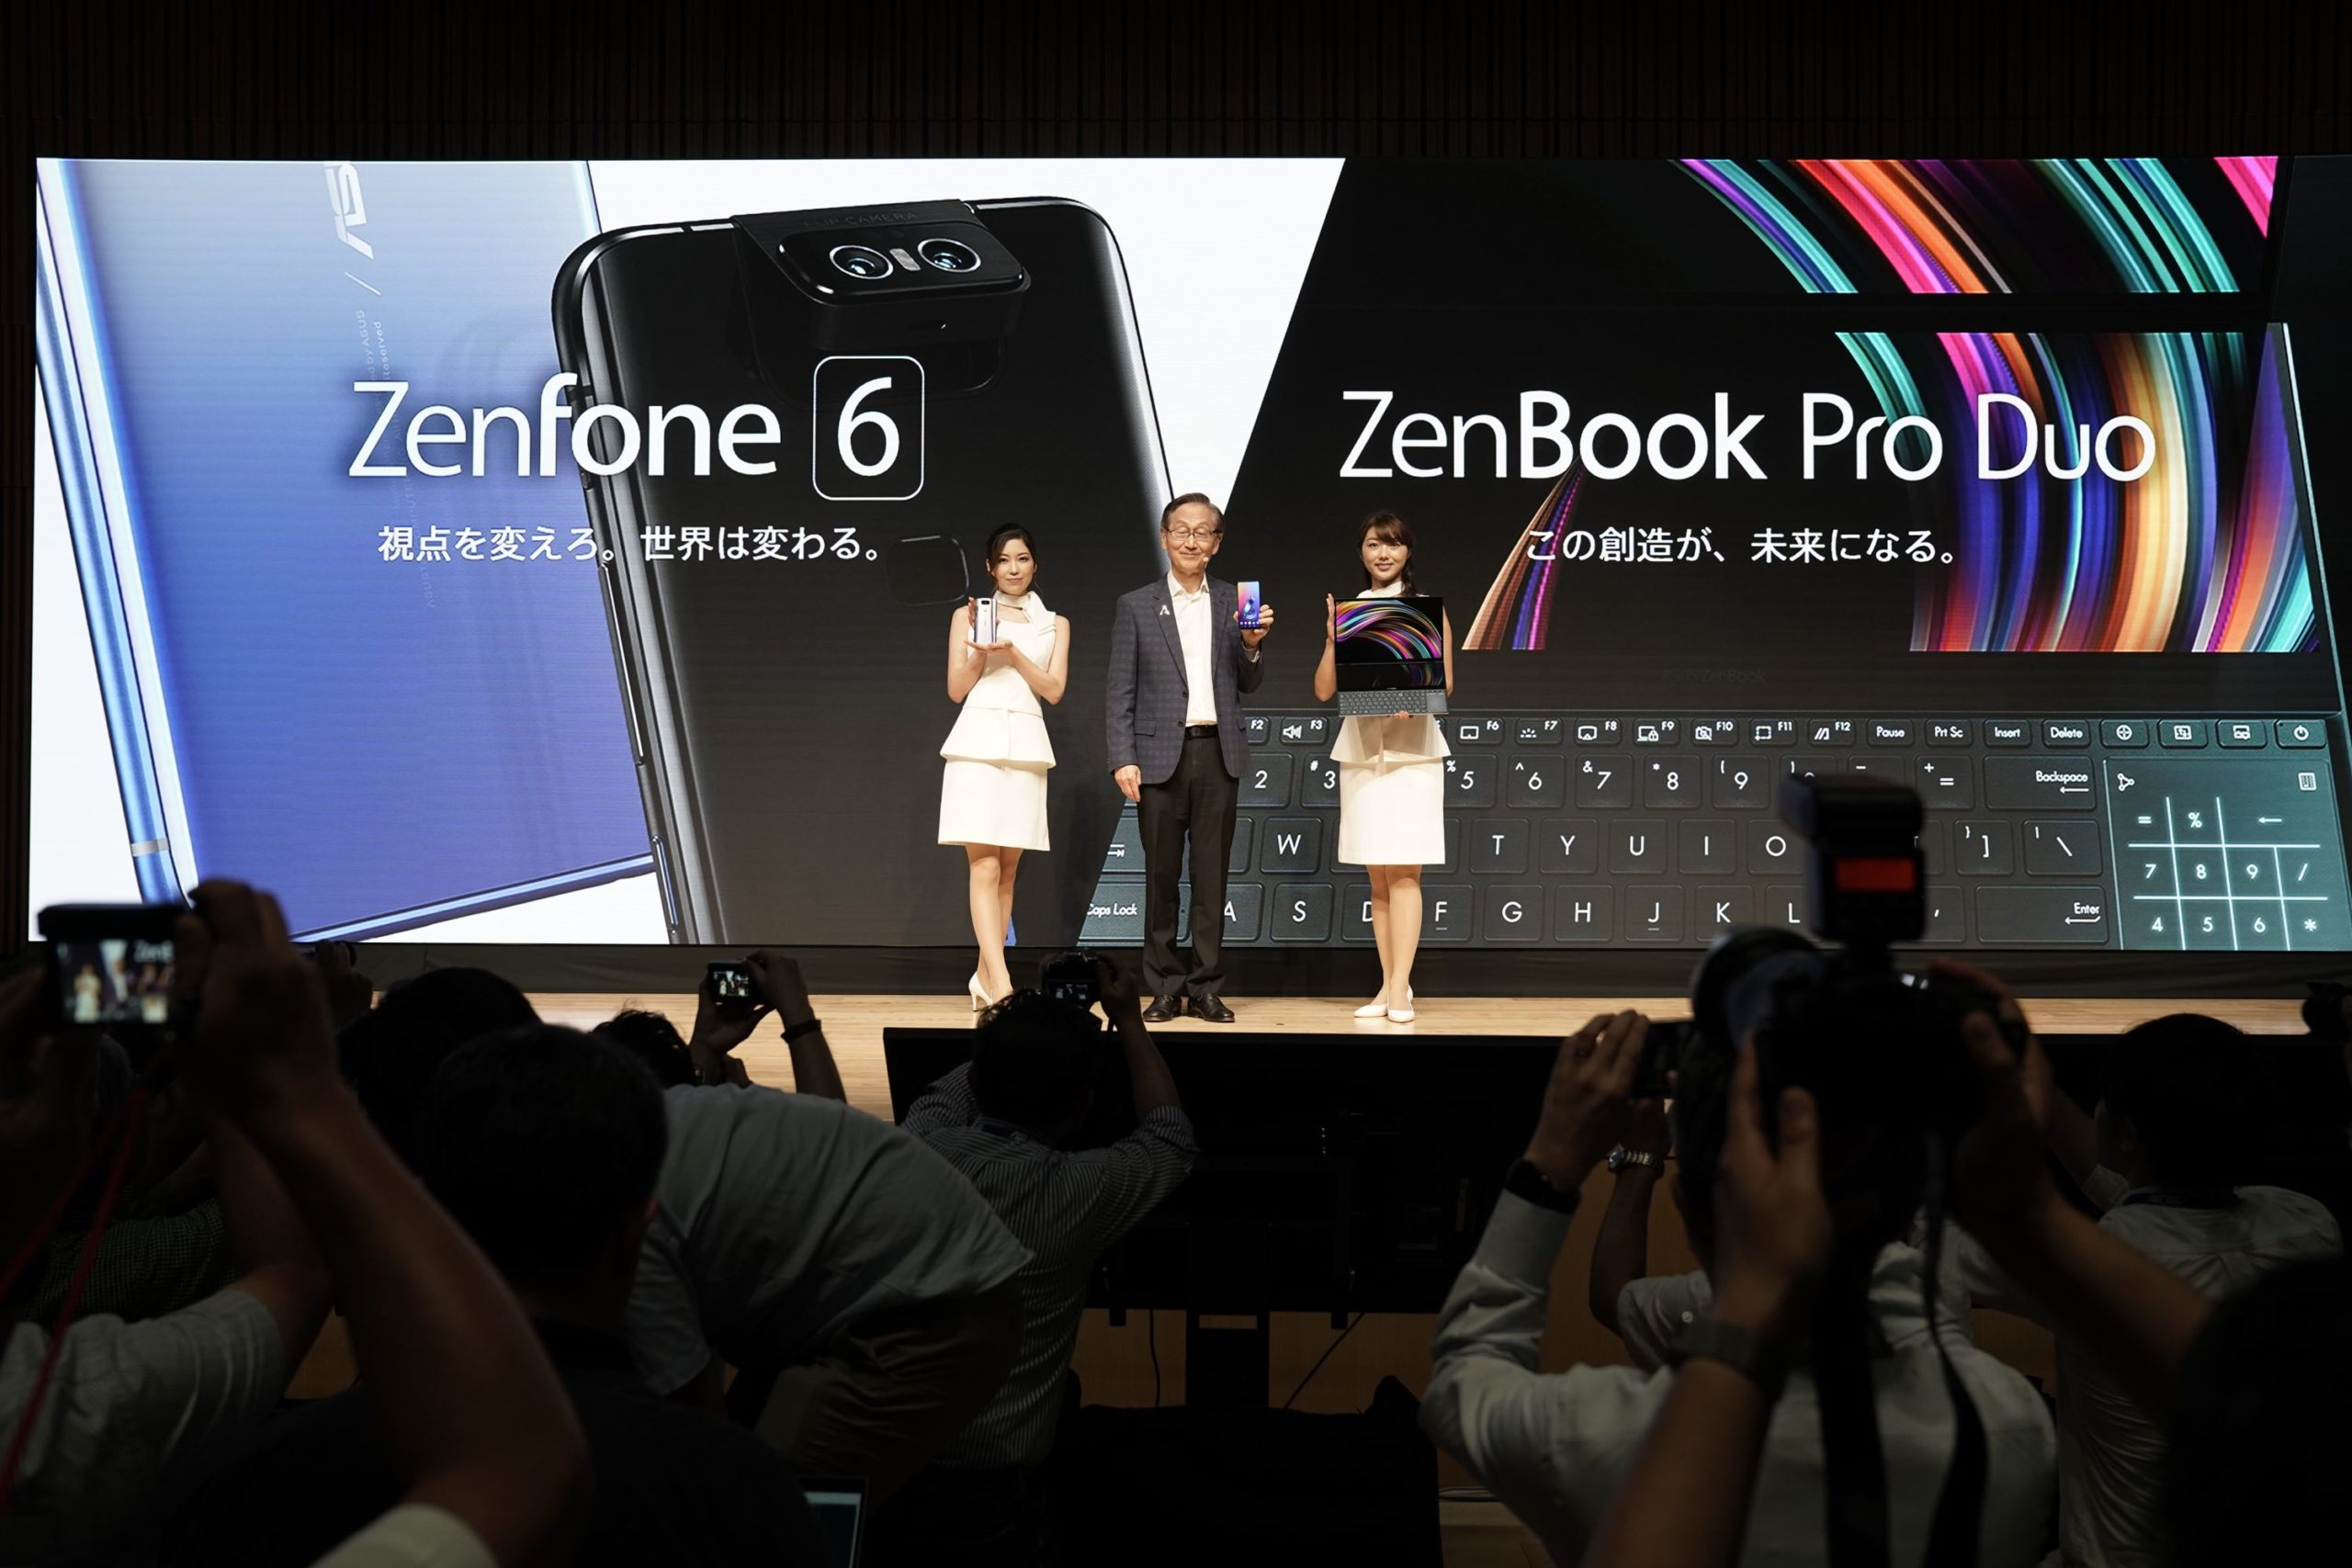 ASUS ZenFone 6/ZenBook Pro Duo Launch event